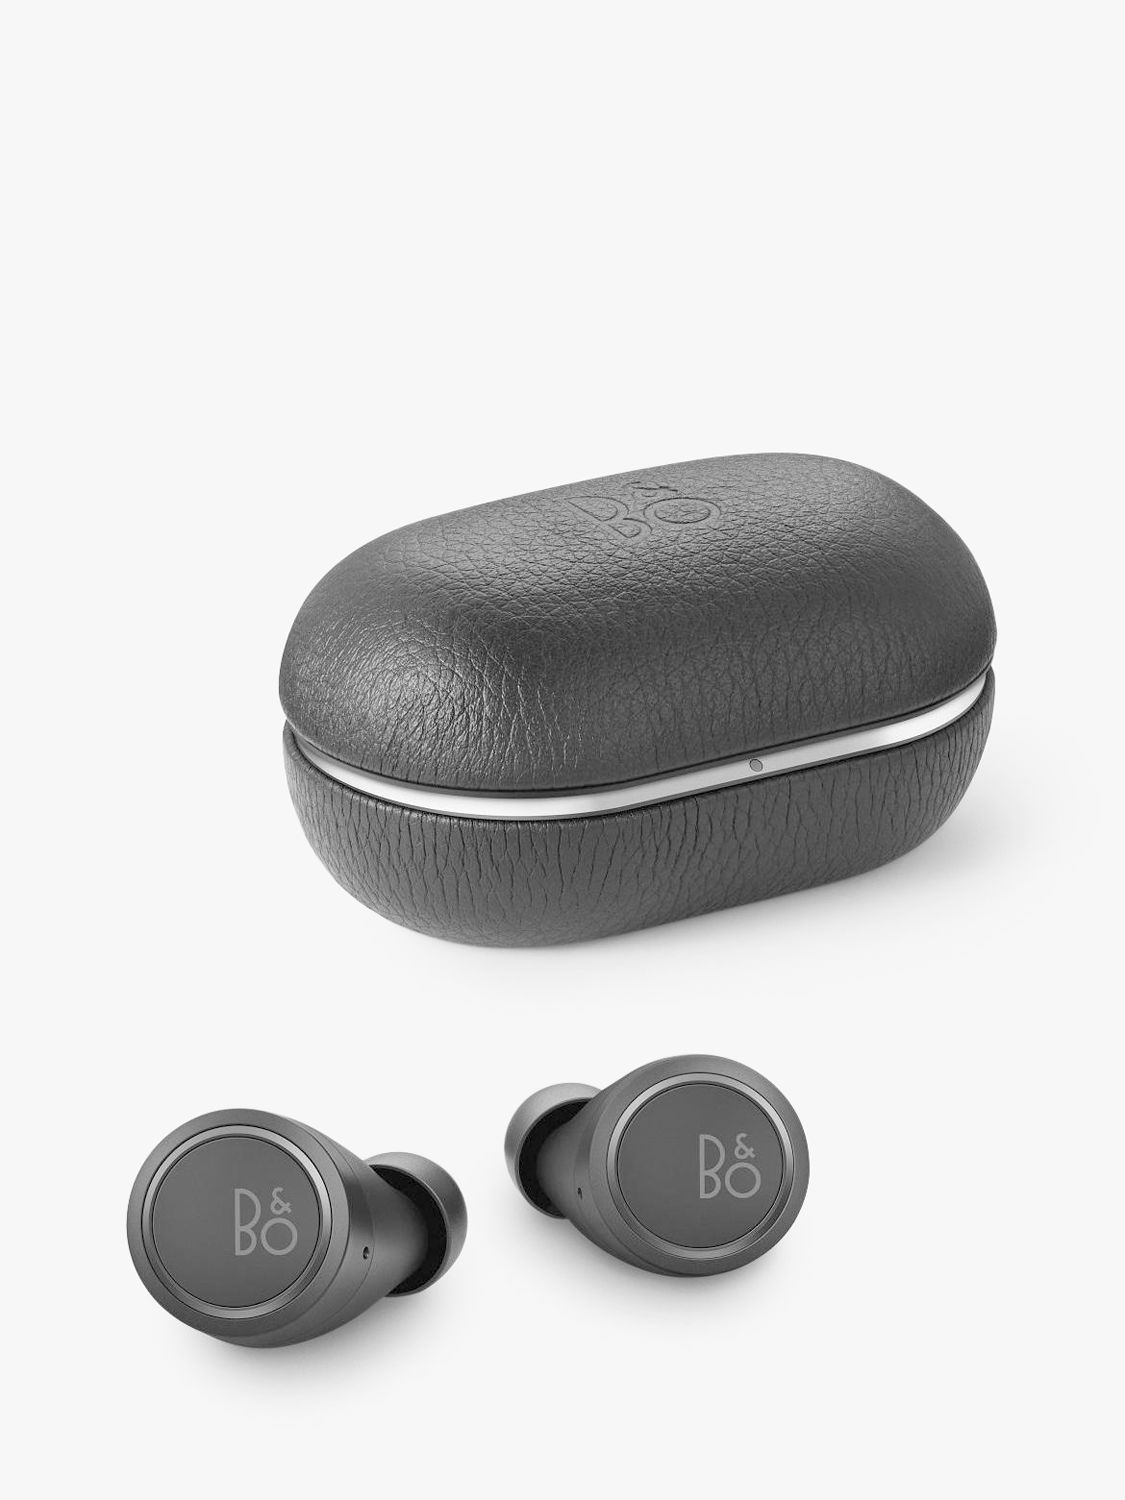 Bang & Olufsen Bang & Olufsen Beoplay E8 3rd Generation True Wireless Bluetooth In-Ear Headphones with Mic/Remote, Black